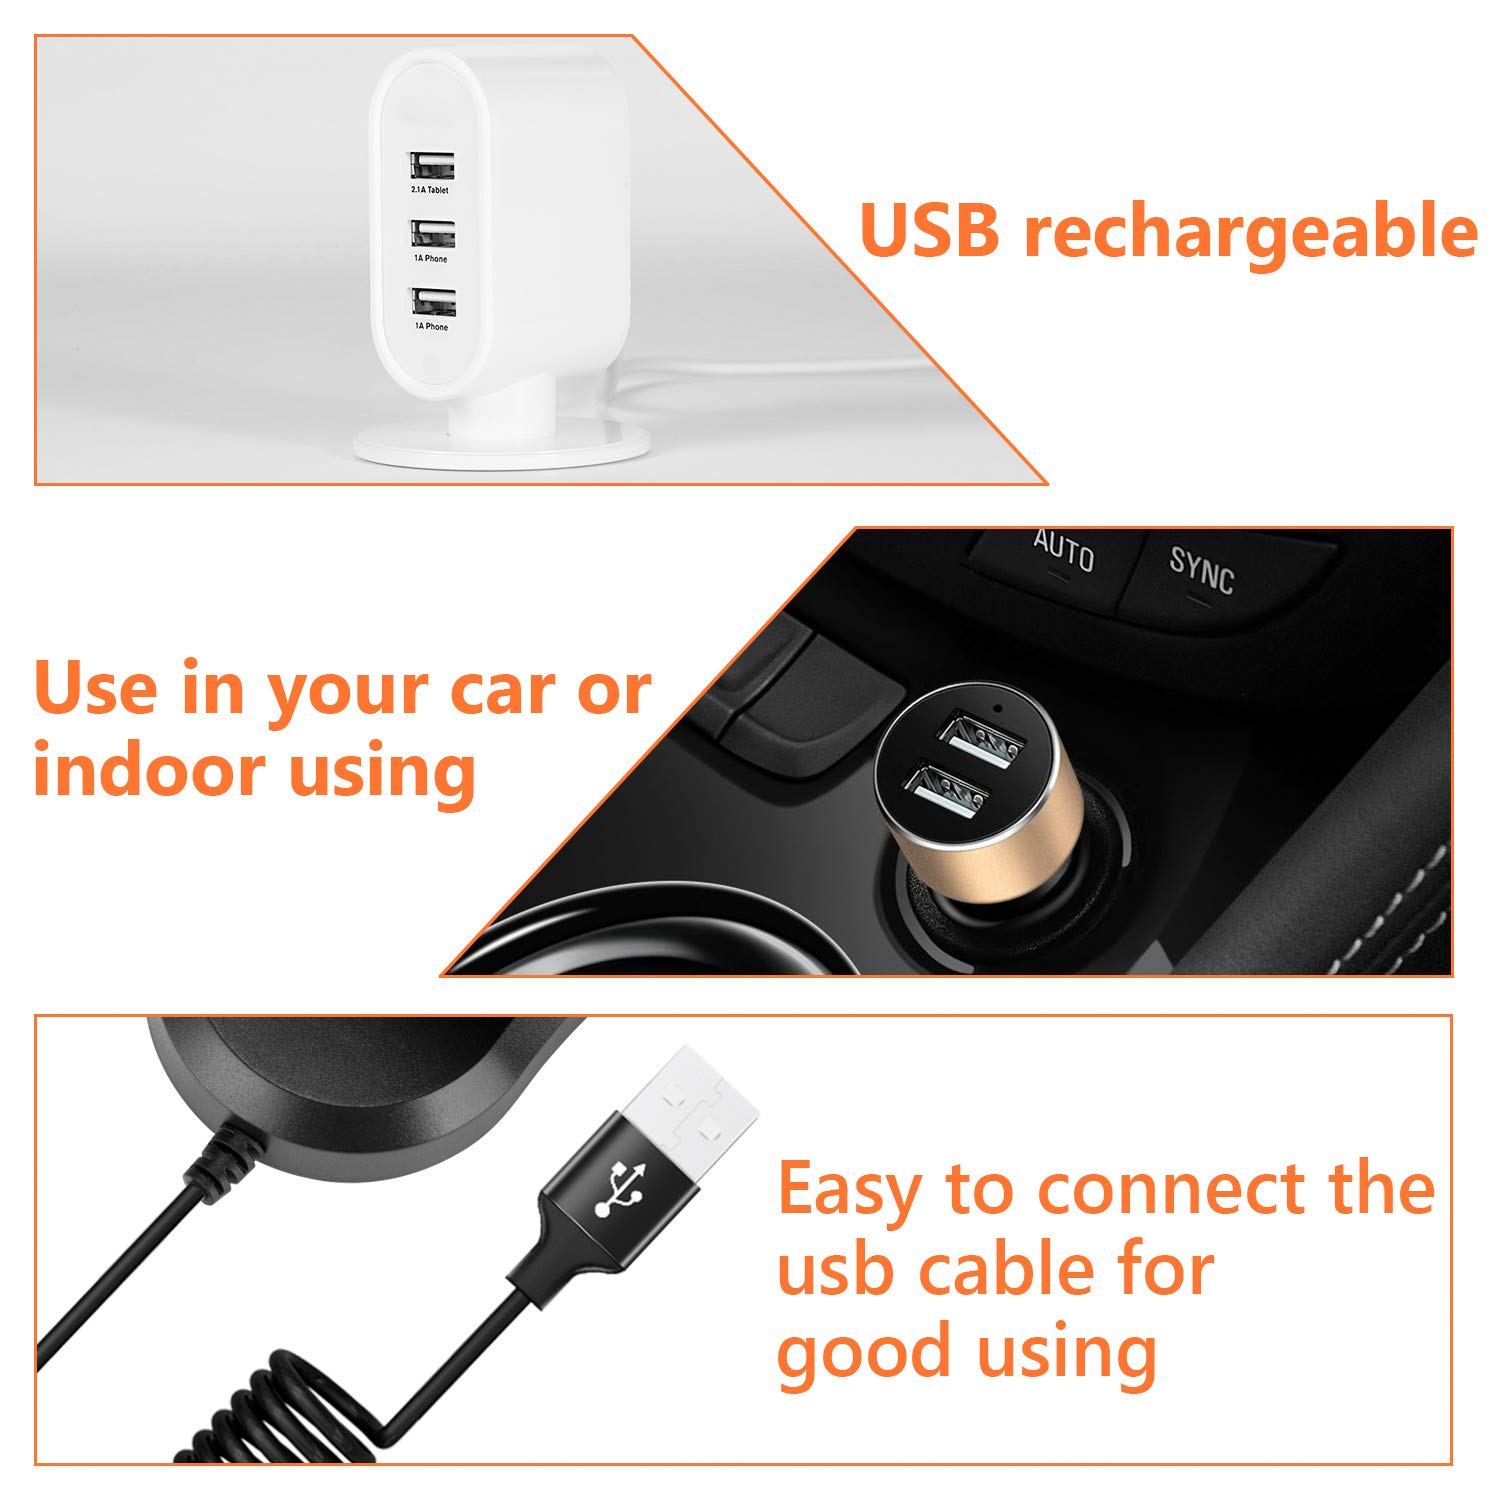 Baby,Desk 5V 2A COMLIFE 360 Rotating Free Adjustment Dual Head Car Auto Cooling Air Fan with 3 Adjustable Speeds,Quiet Powerful Dashboard Electric Car Fans For Vehicle,Back seat Boat